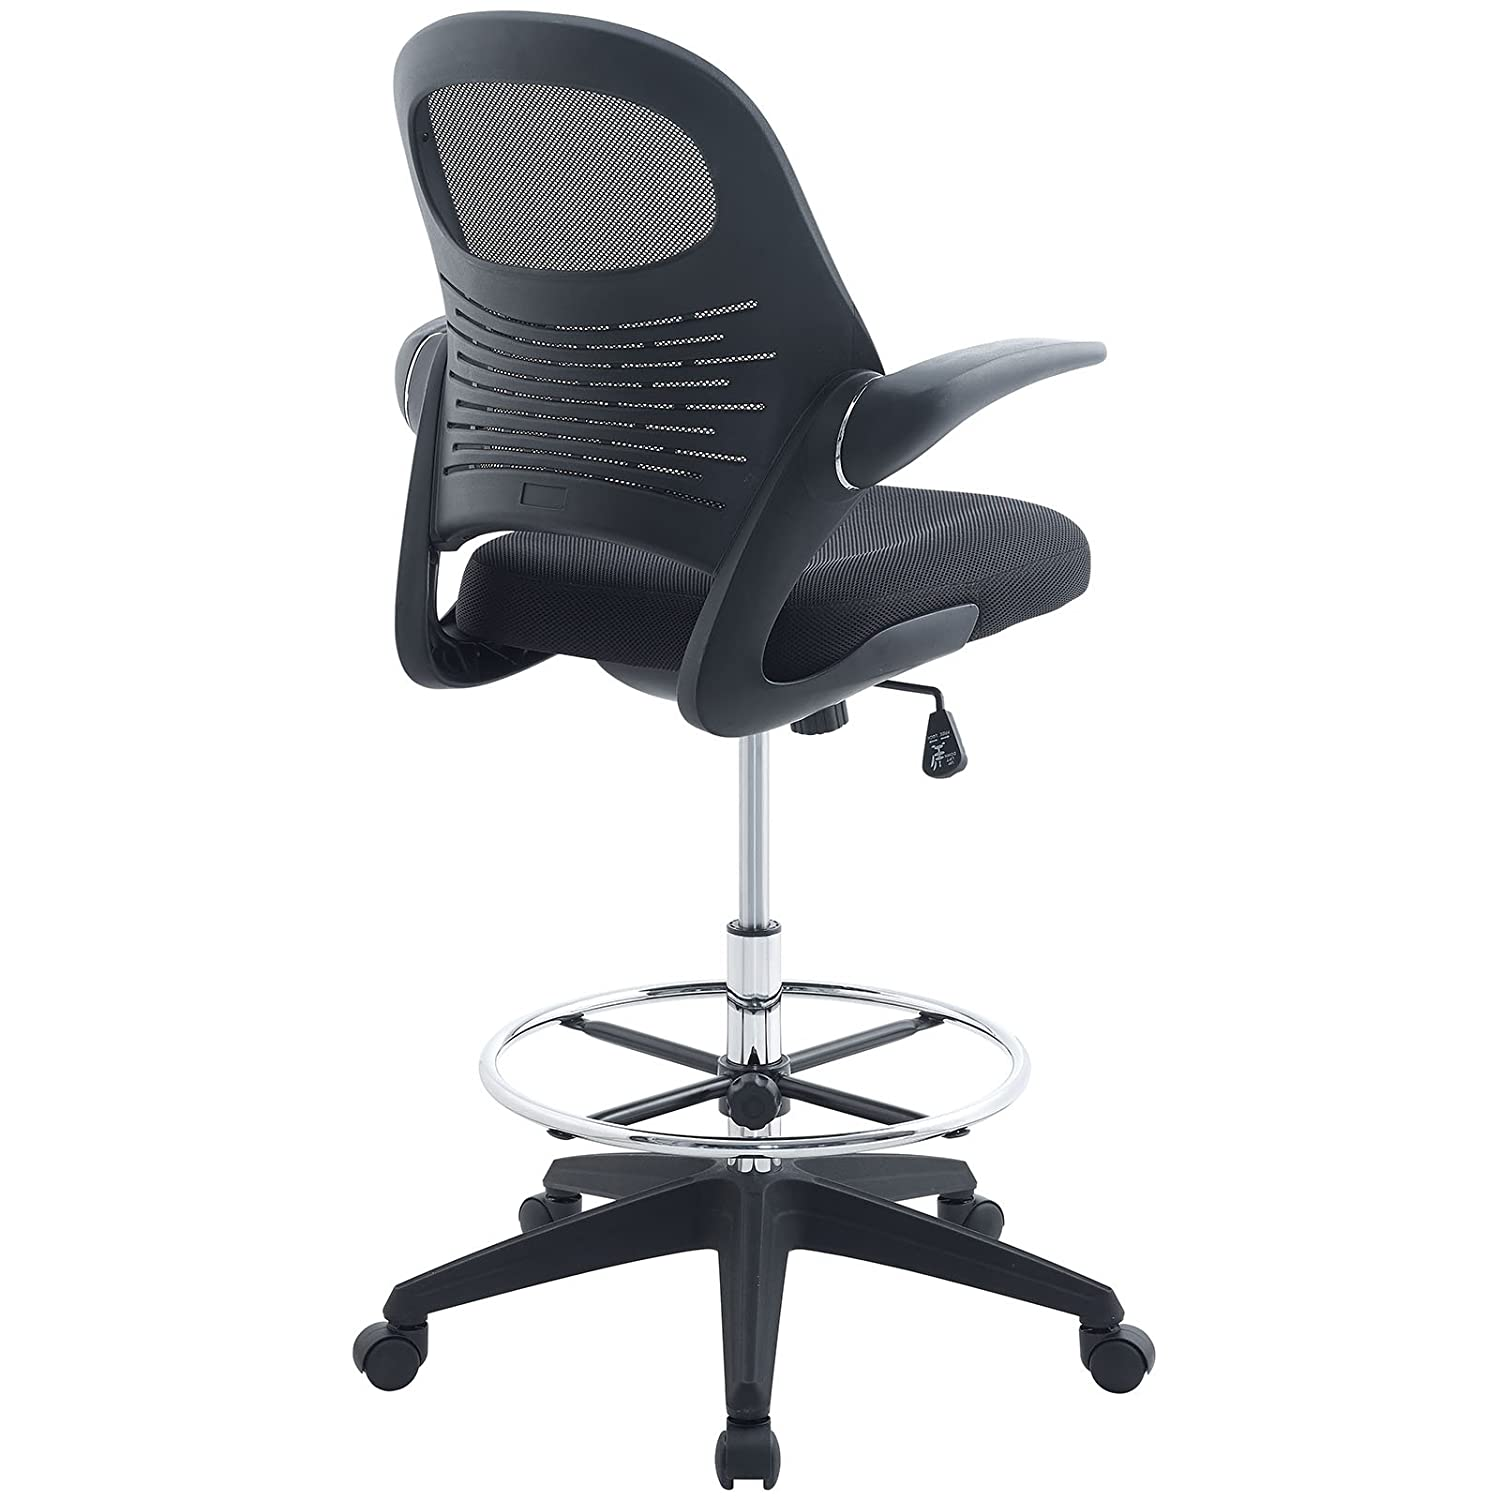 Modway Stealth Drafting Chair In Black - Reception Desk Chair - Tall Office Chair For Adjustable Standing Desks - Drafting Table Chair - Flip-Up Arms Modway Inc. EEI-2290-BLK